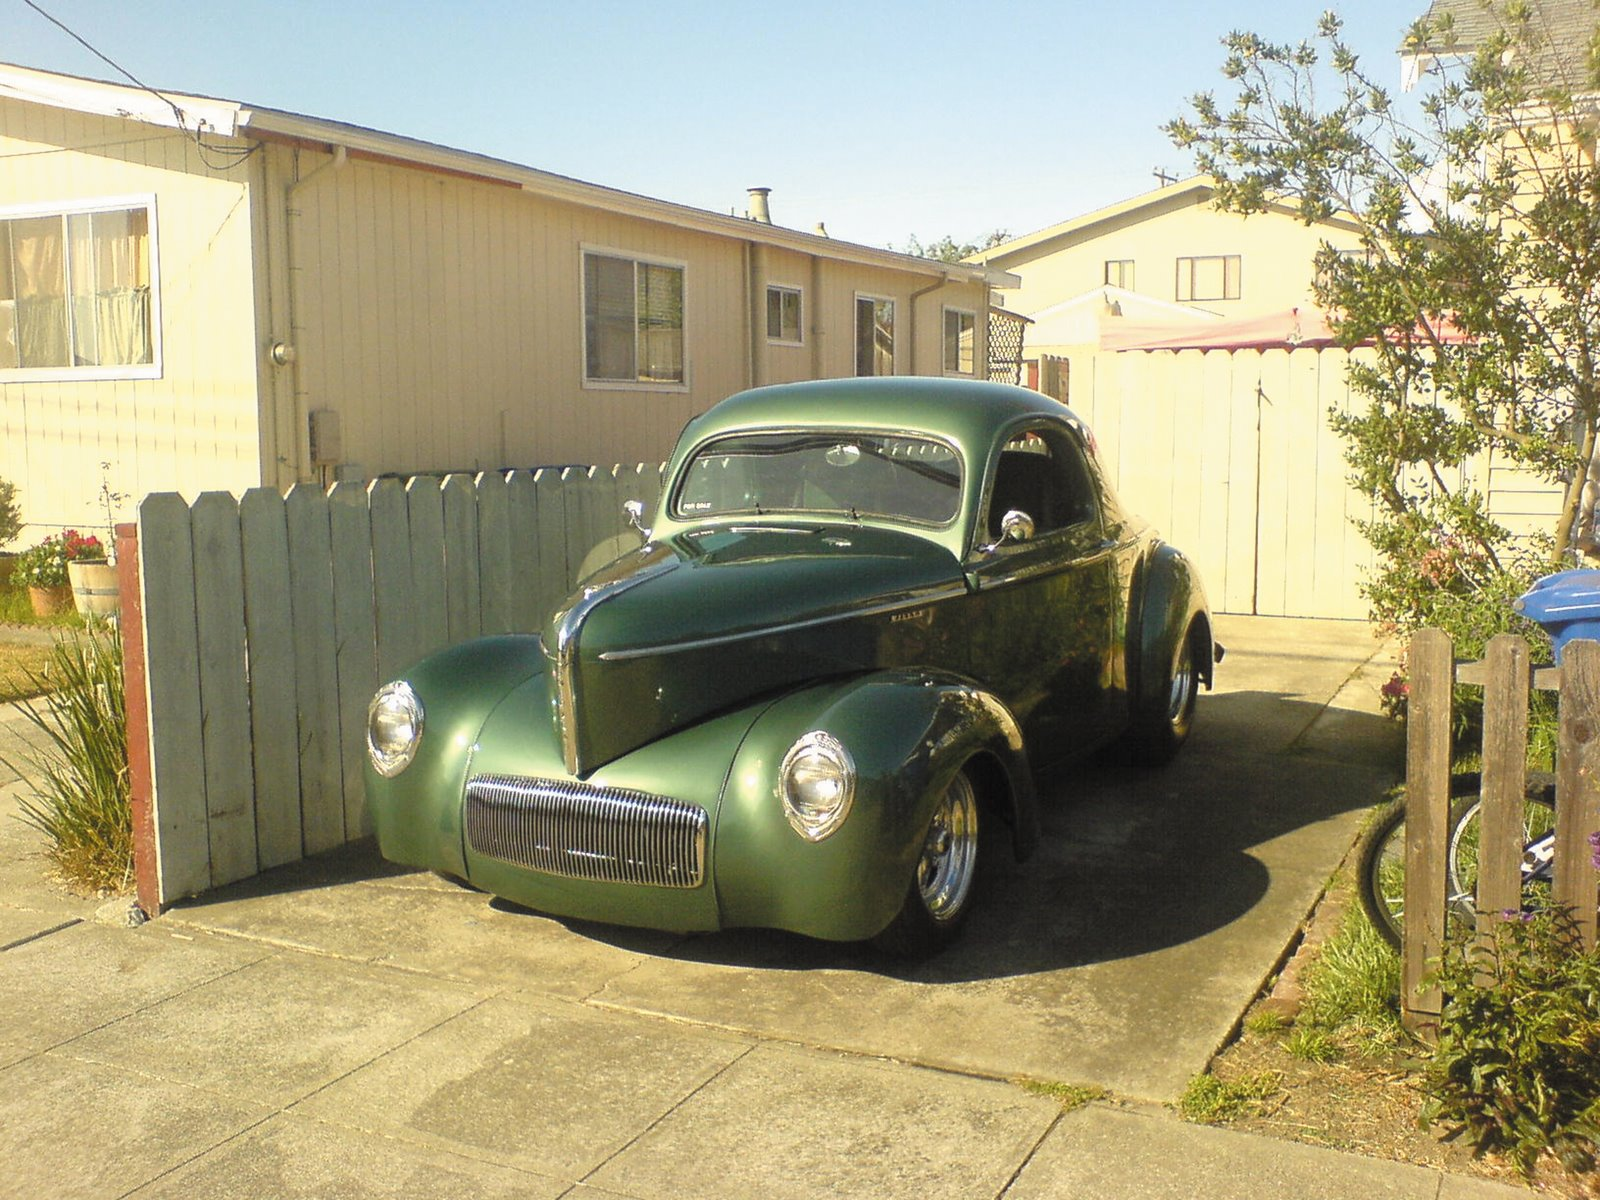 FOR SALE: 1941 WILLYS COUPE.